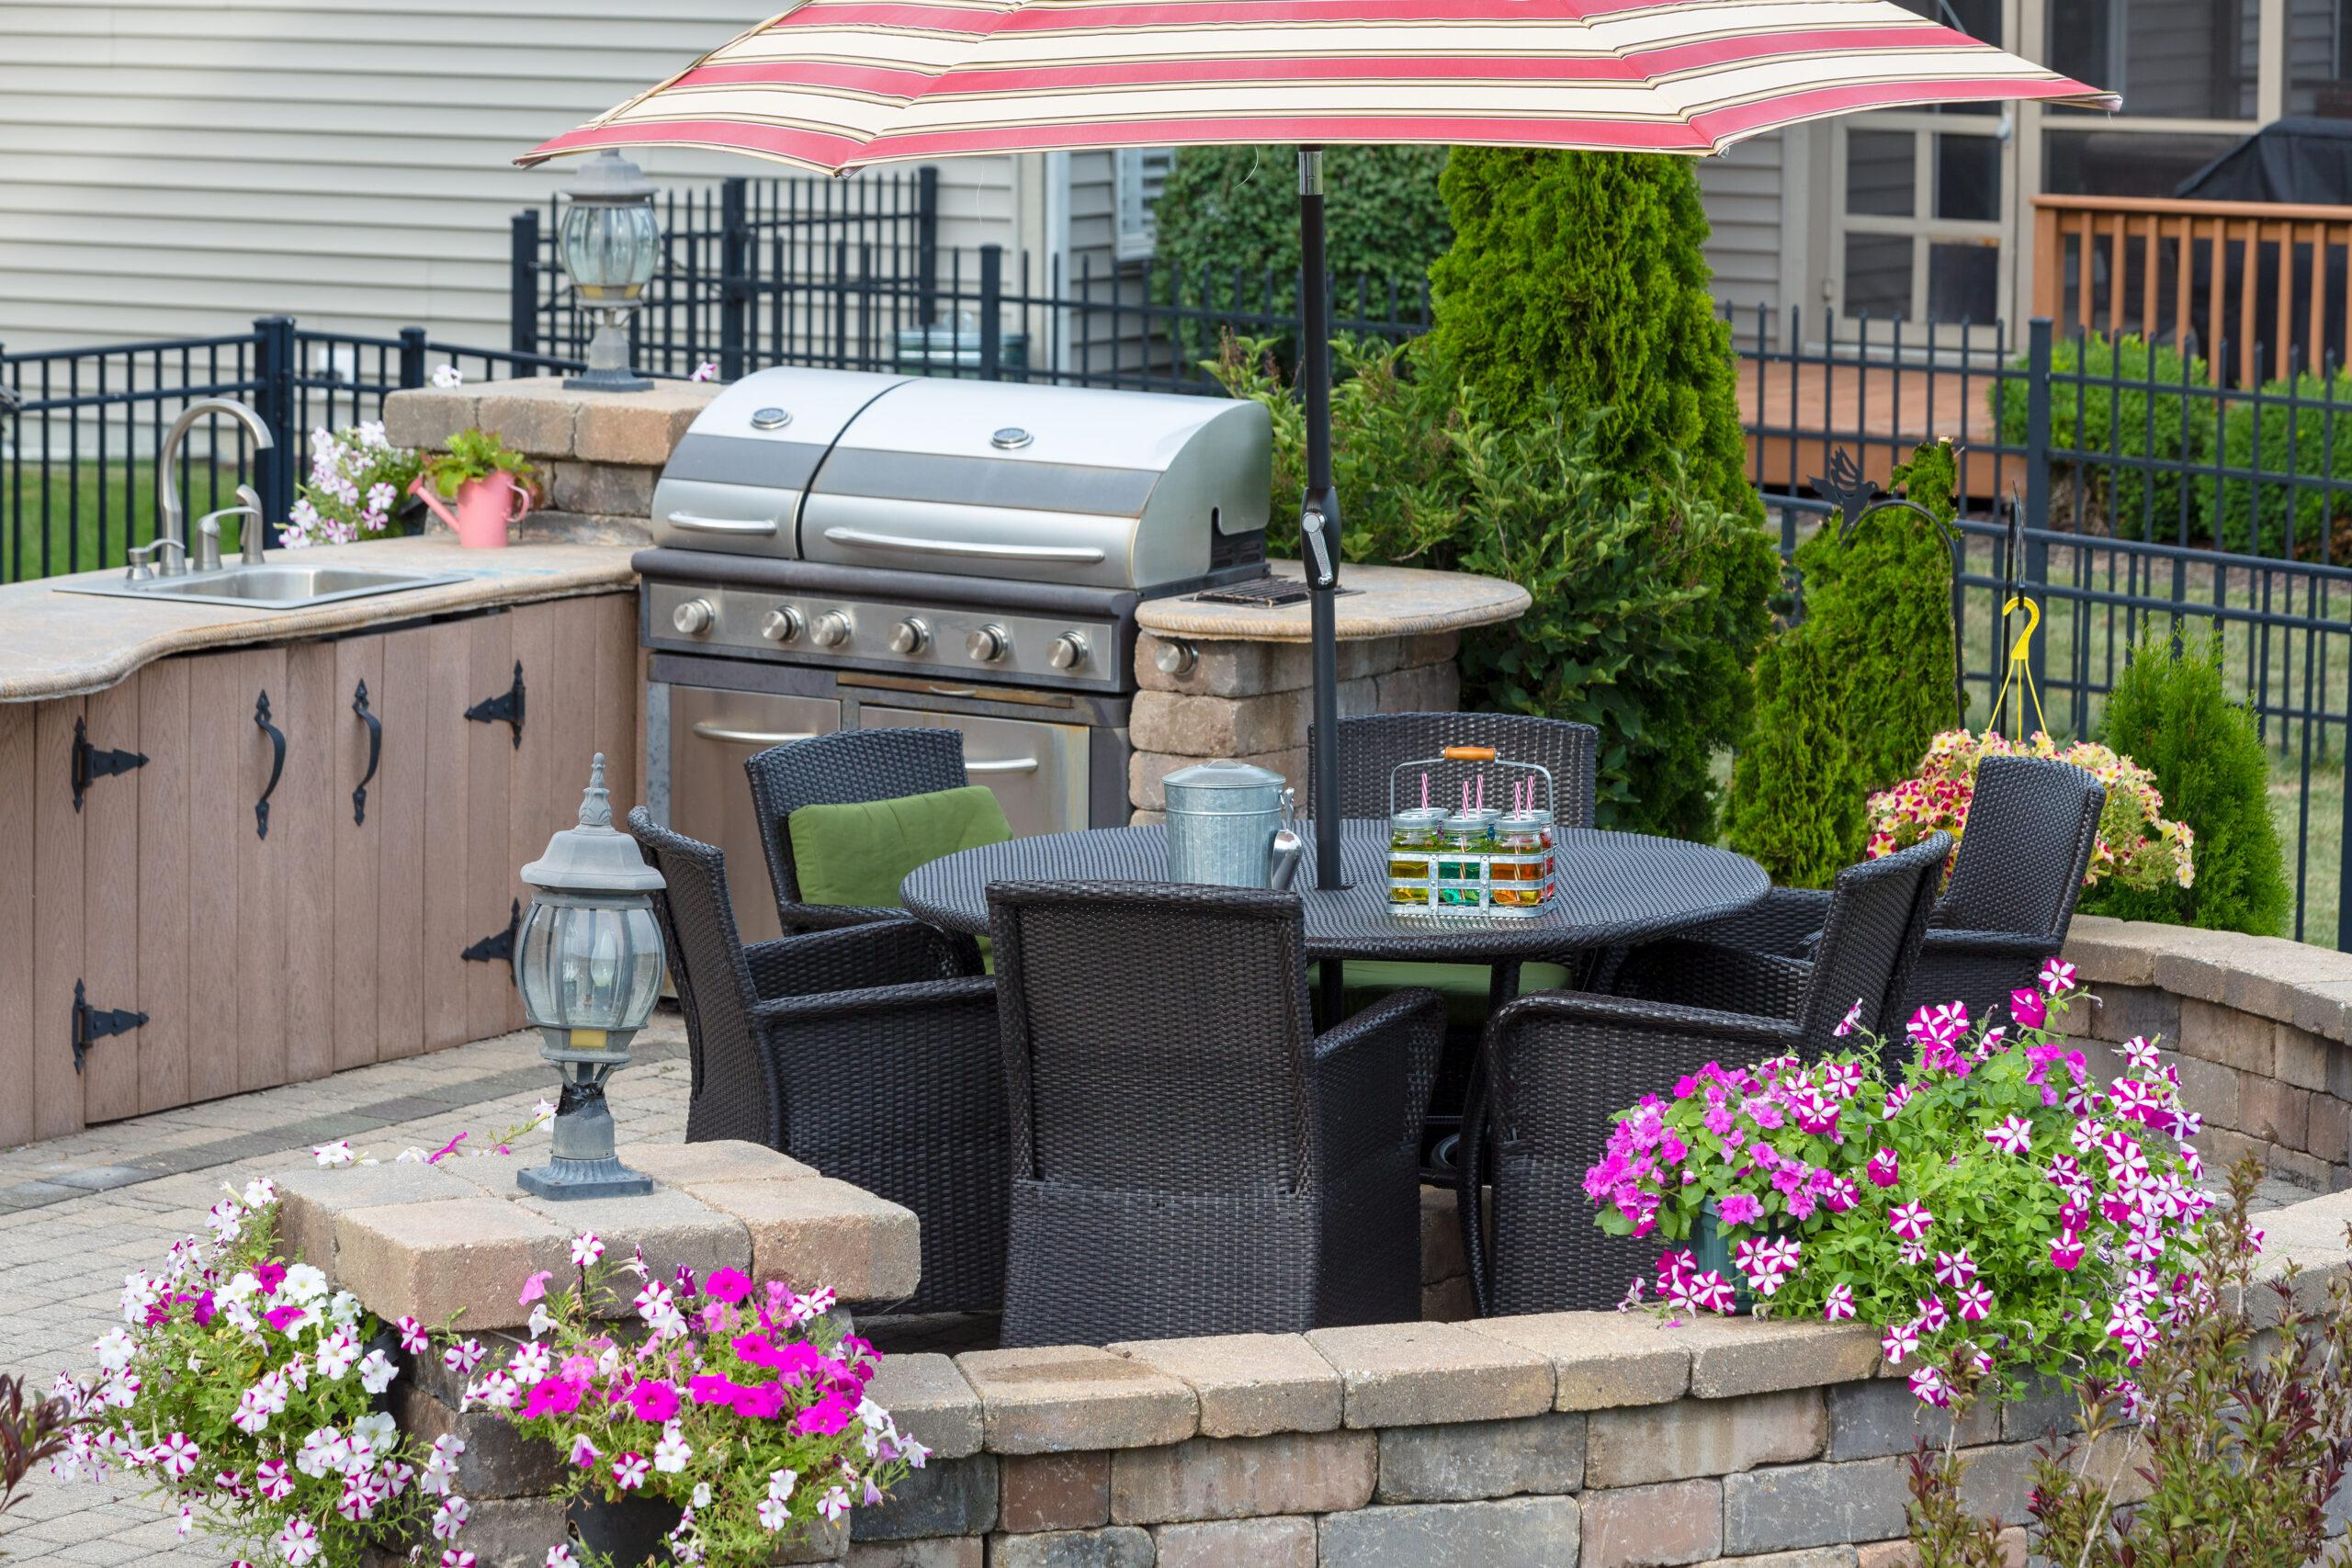 Barbecue Grillls & More